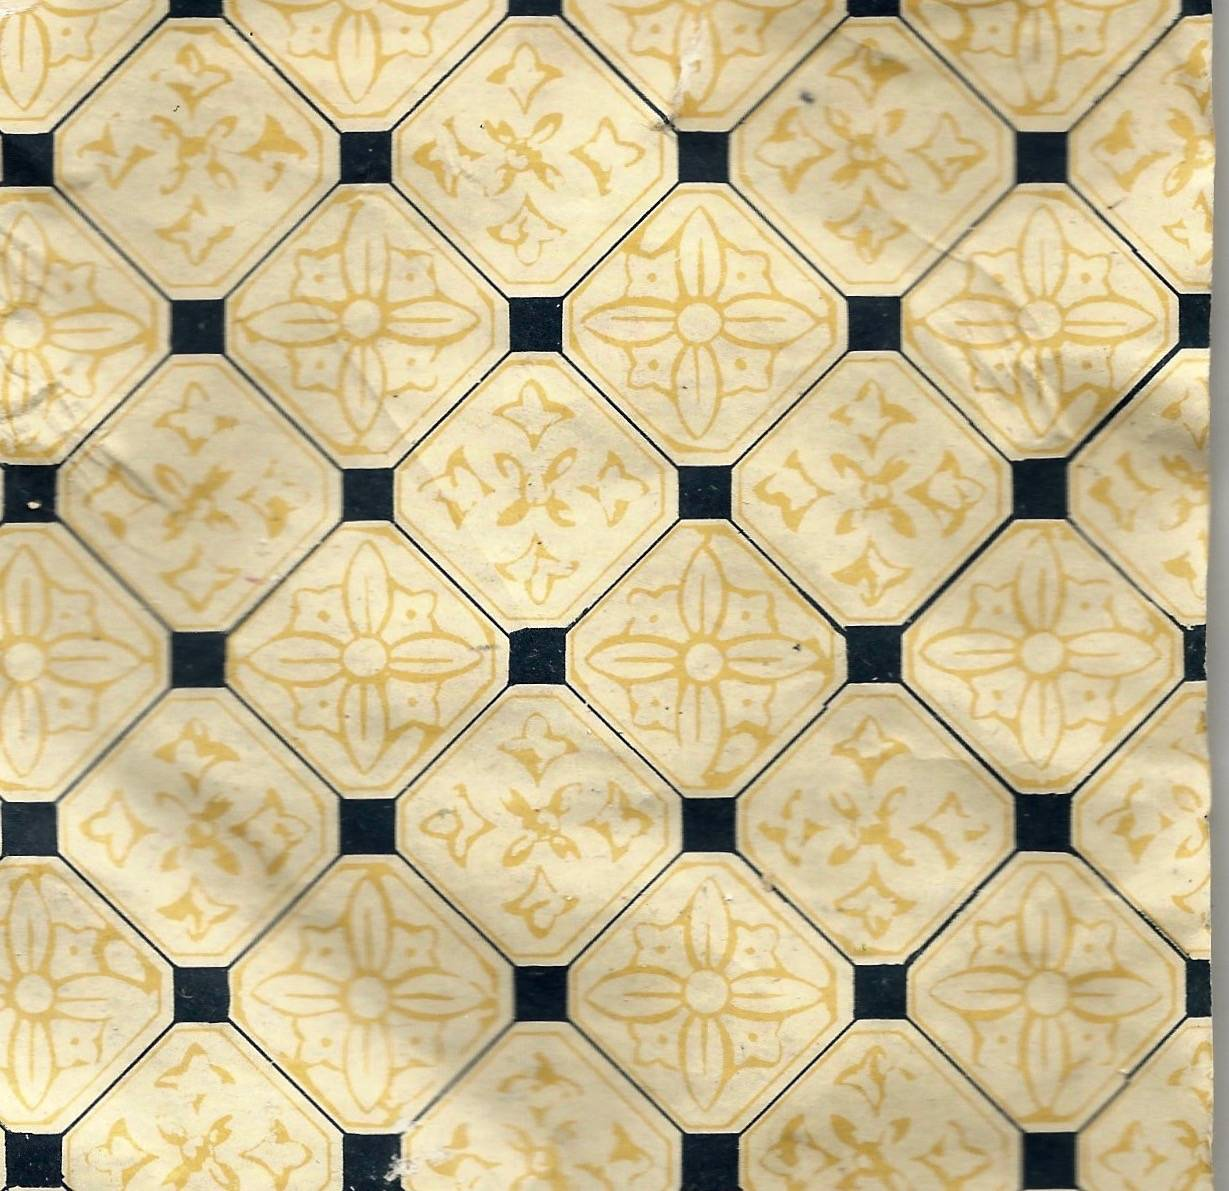 Patterned tile Pic 1